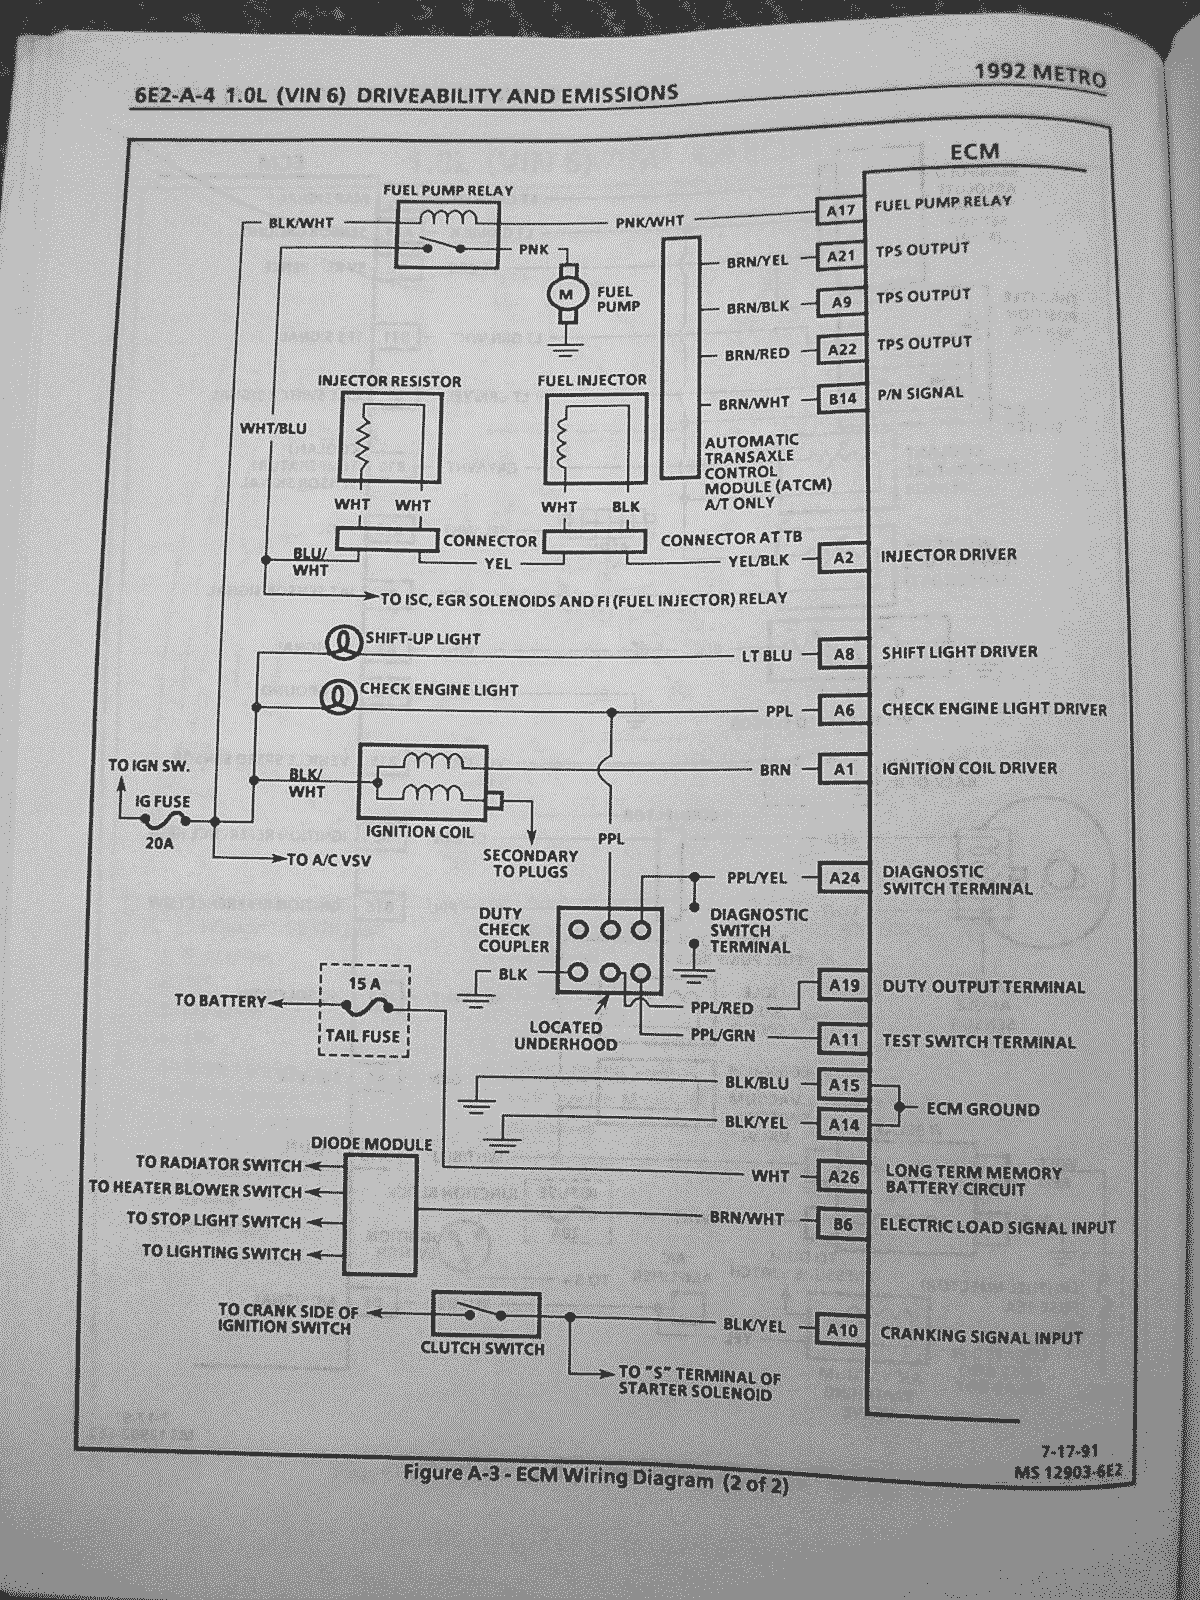 6e2 a 4 geo metro and suzuki swift wiring diagrams metroxfi com 1994 geo metro fuse box diagram at readyjetset.co